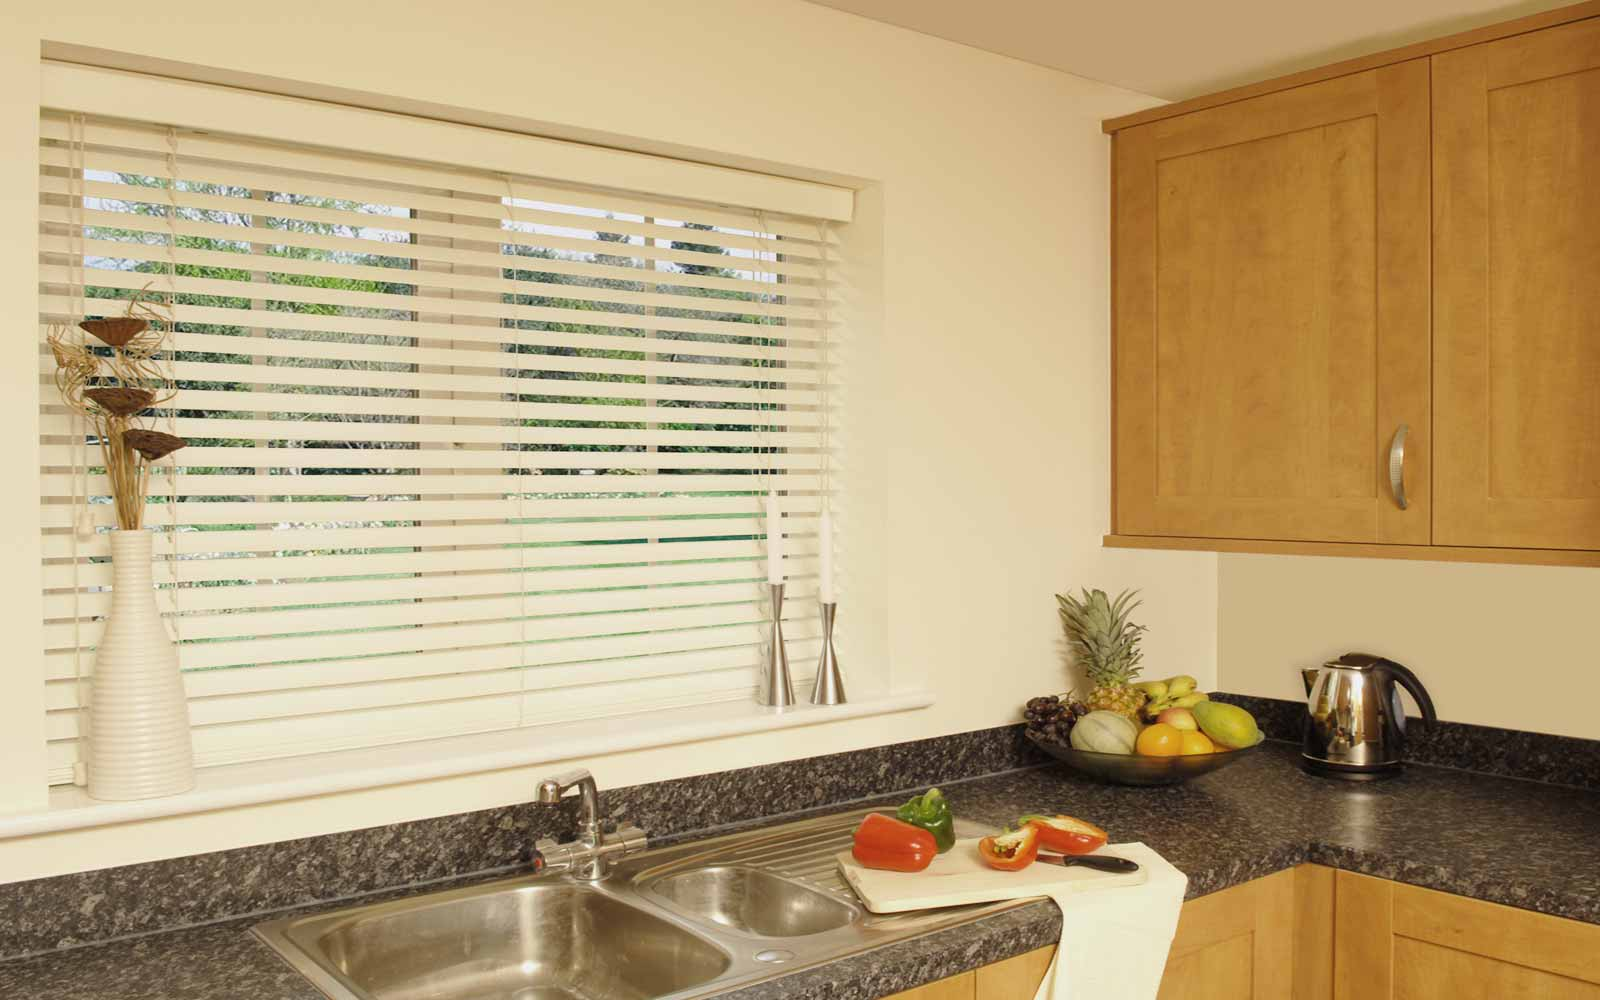 Incroyable Faux Wood Venetian Blinds In A Kitchen